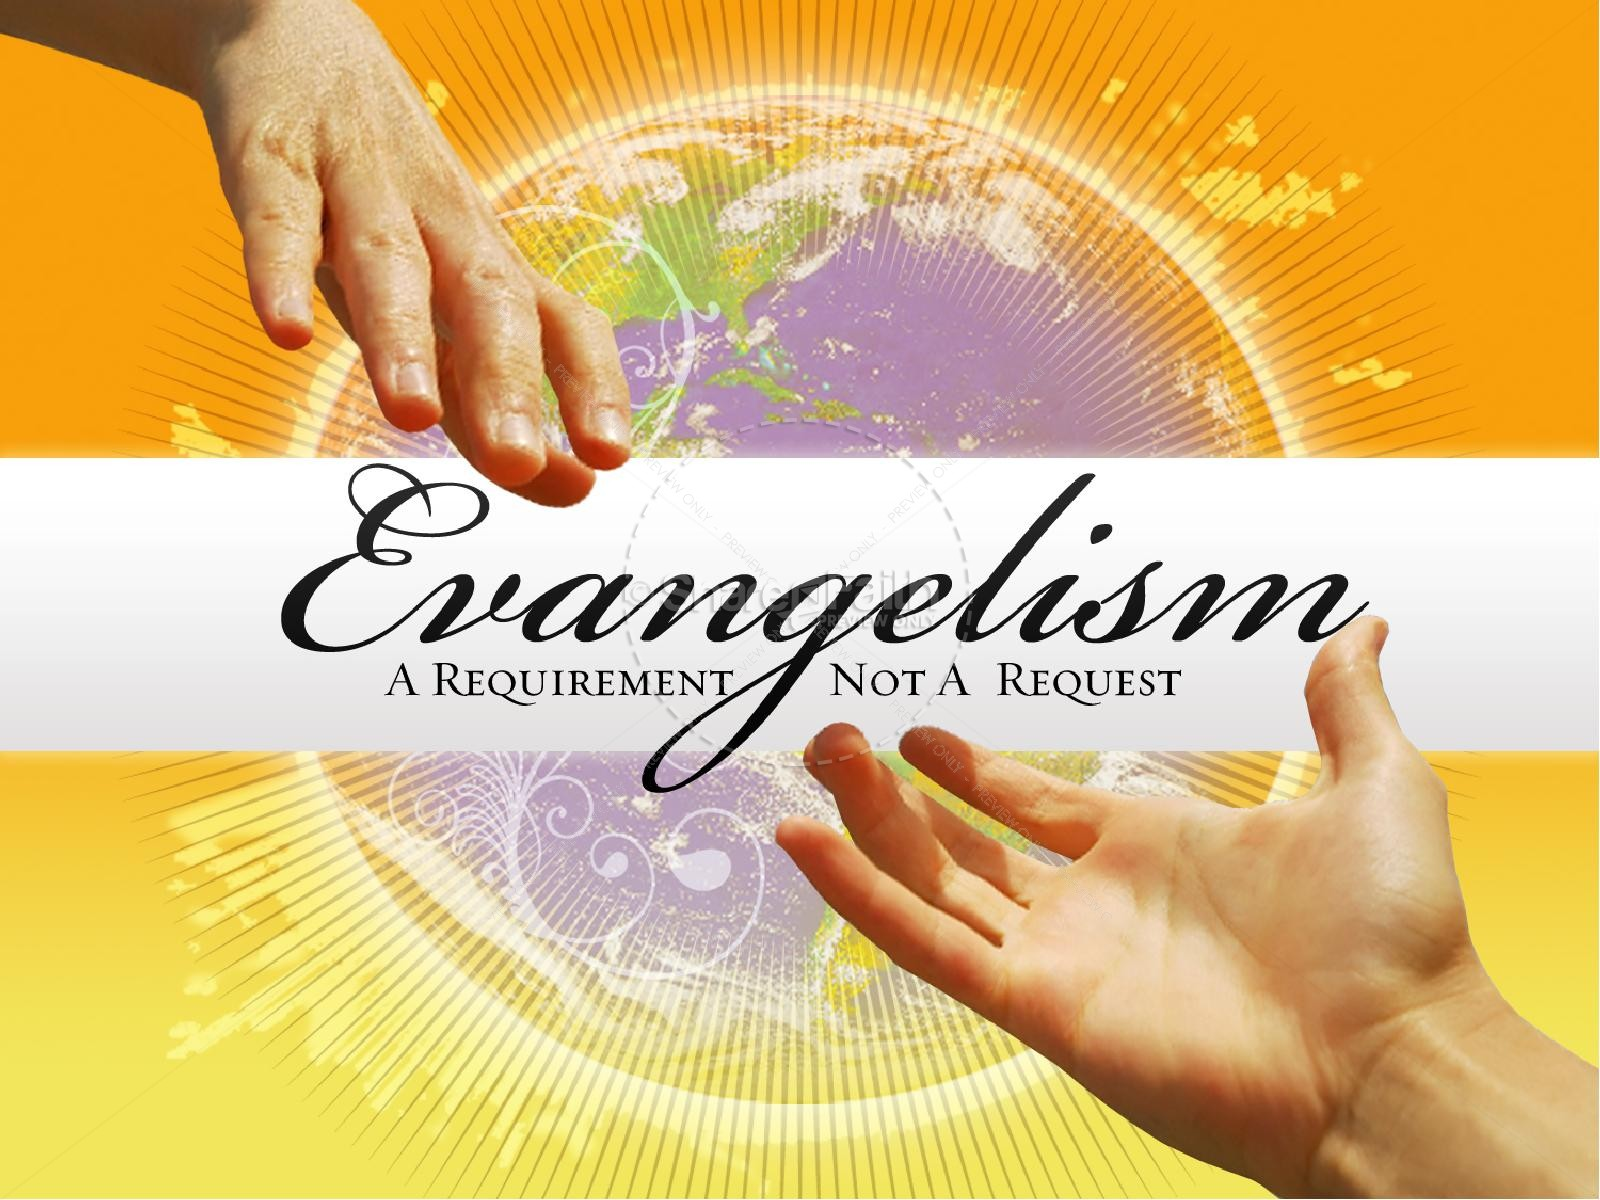 evangelism powerpoint template free clipart for church bulletins youth free clipart for church bulletins for april